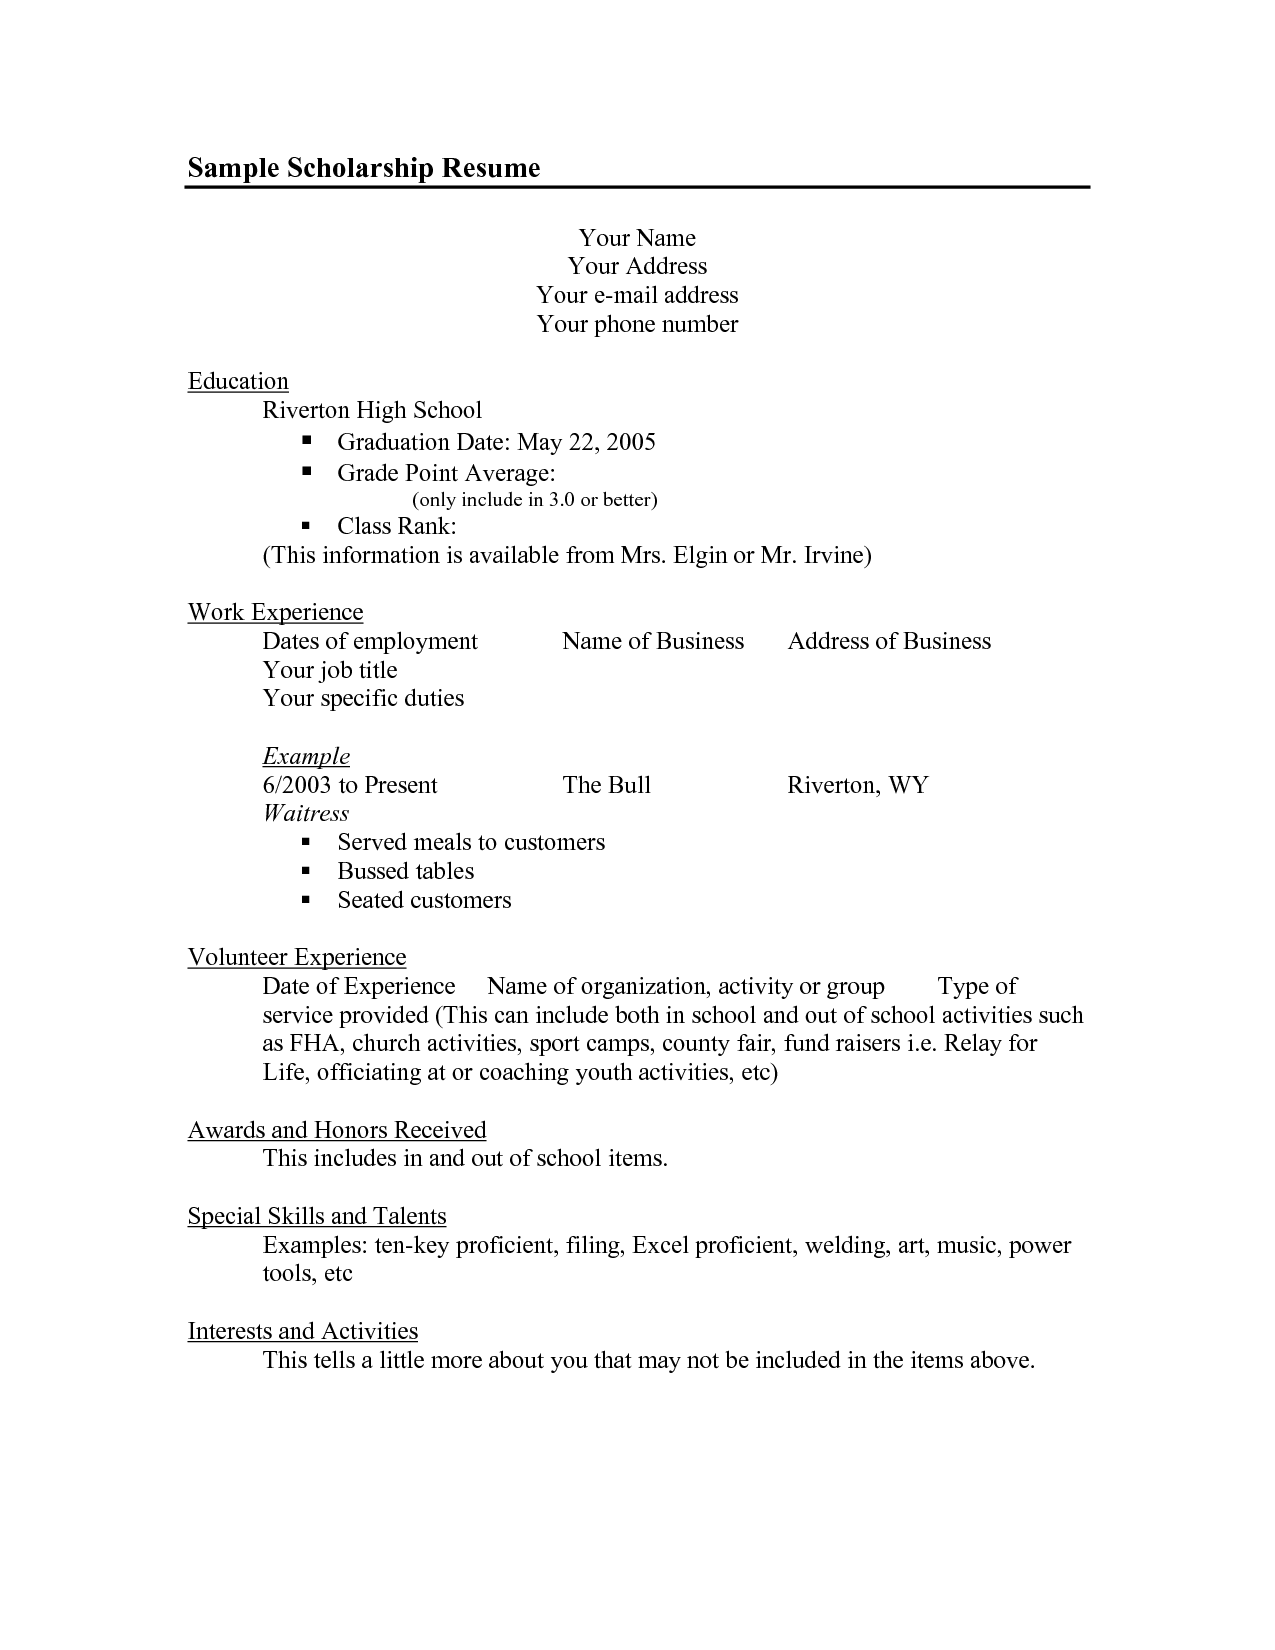 scholarship resume templates | sample scholarship resume graduation